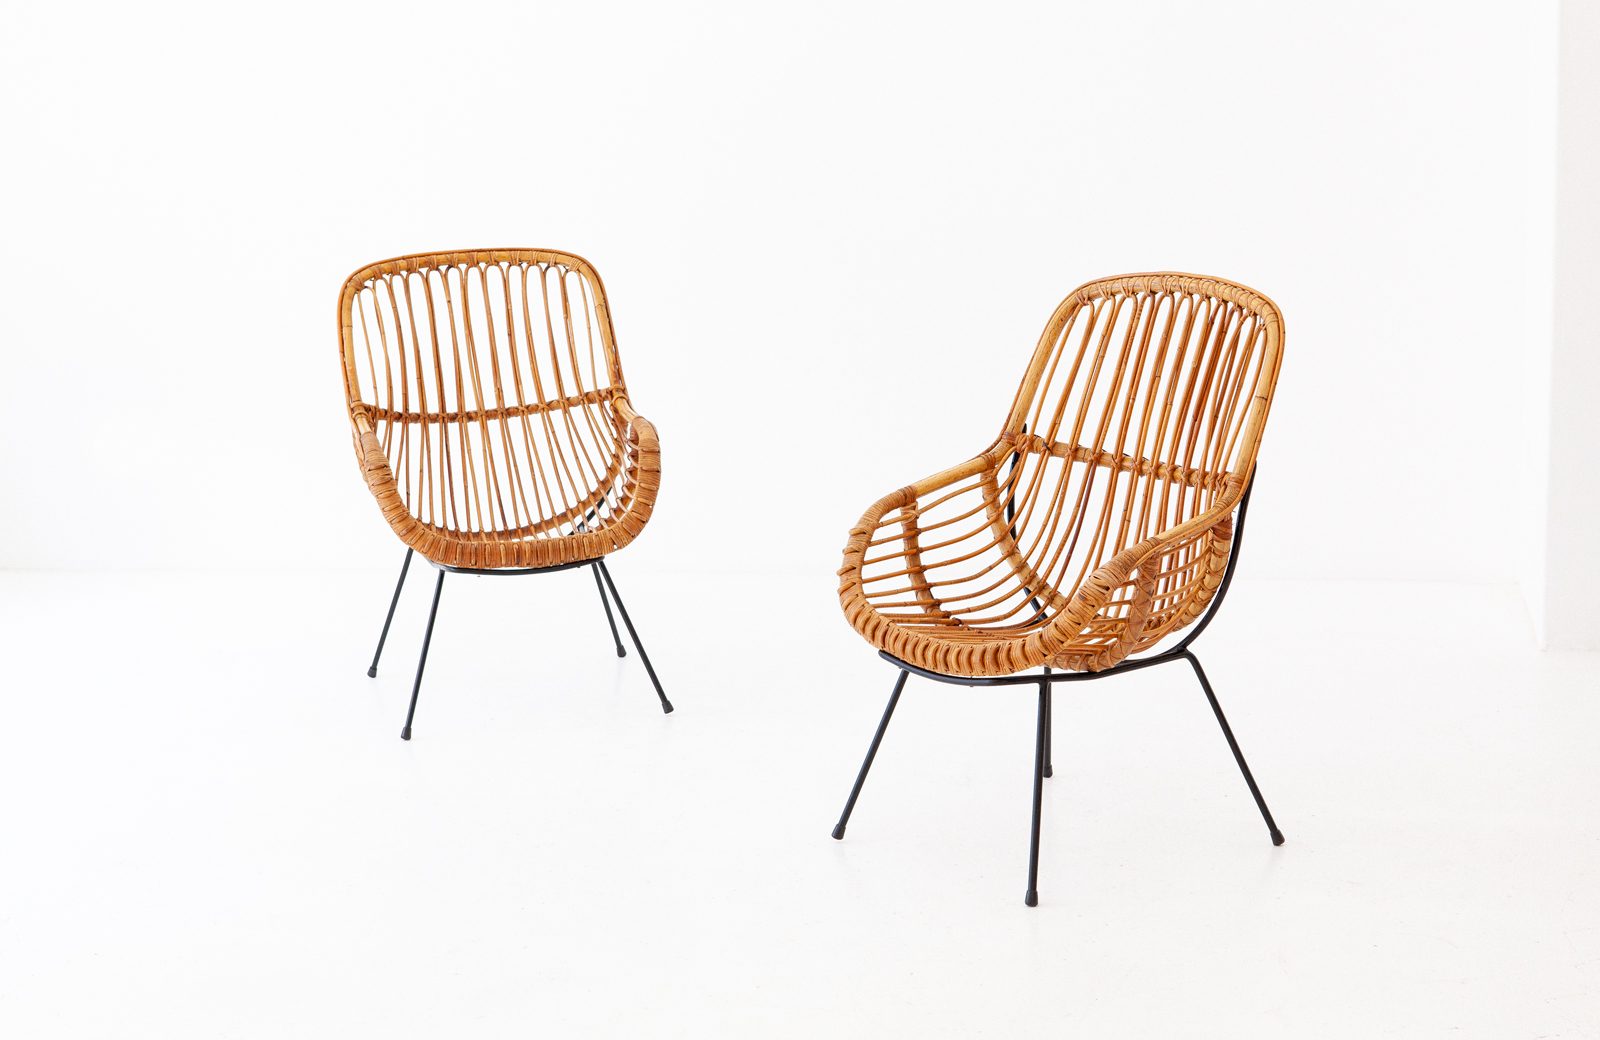 1950s-italian-iron-rattan-wicker-lounge-chairs-1-SE282